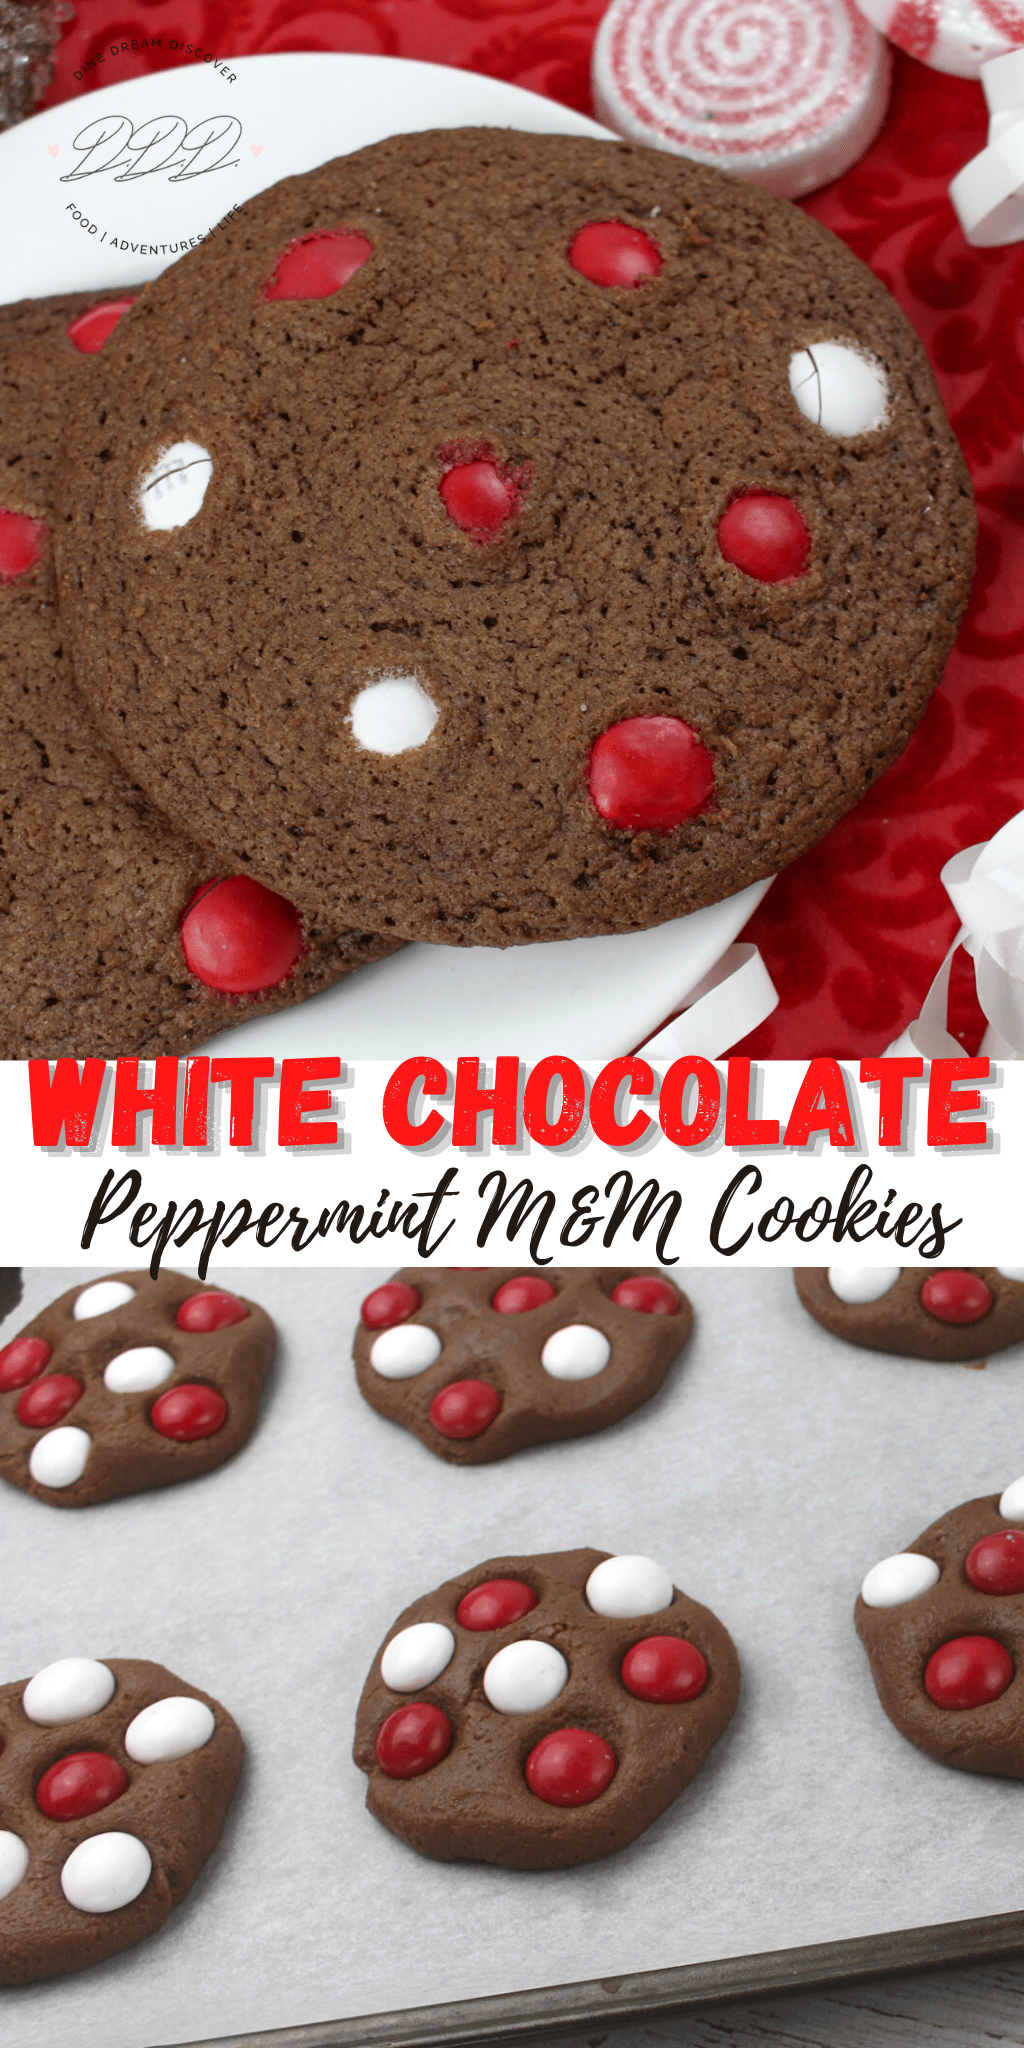 Homemade White Chocolate Peppermint M&M Cookies